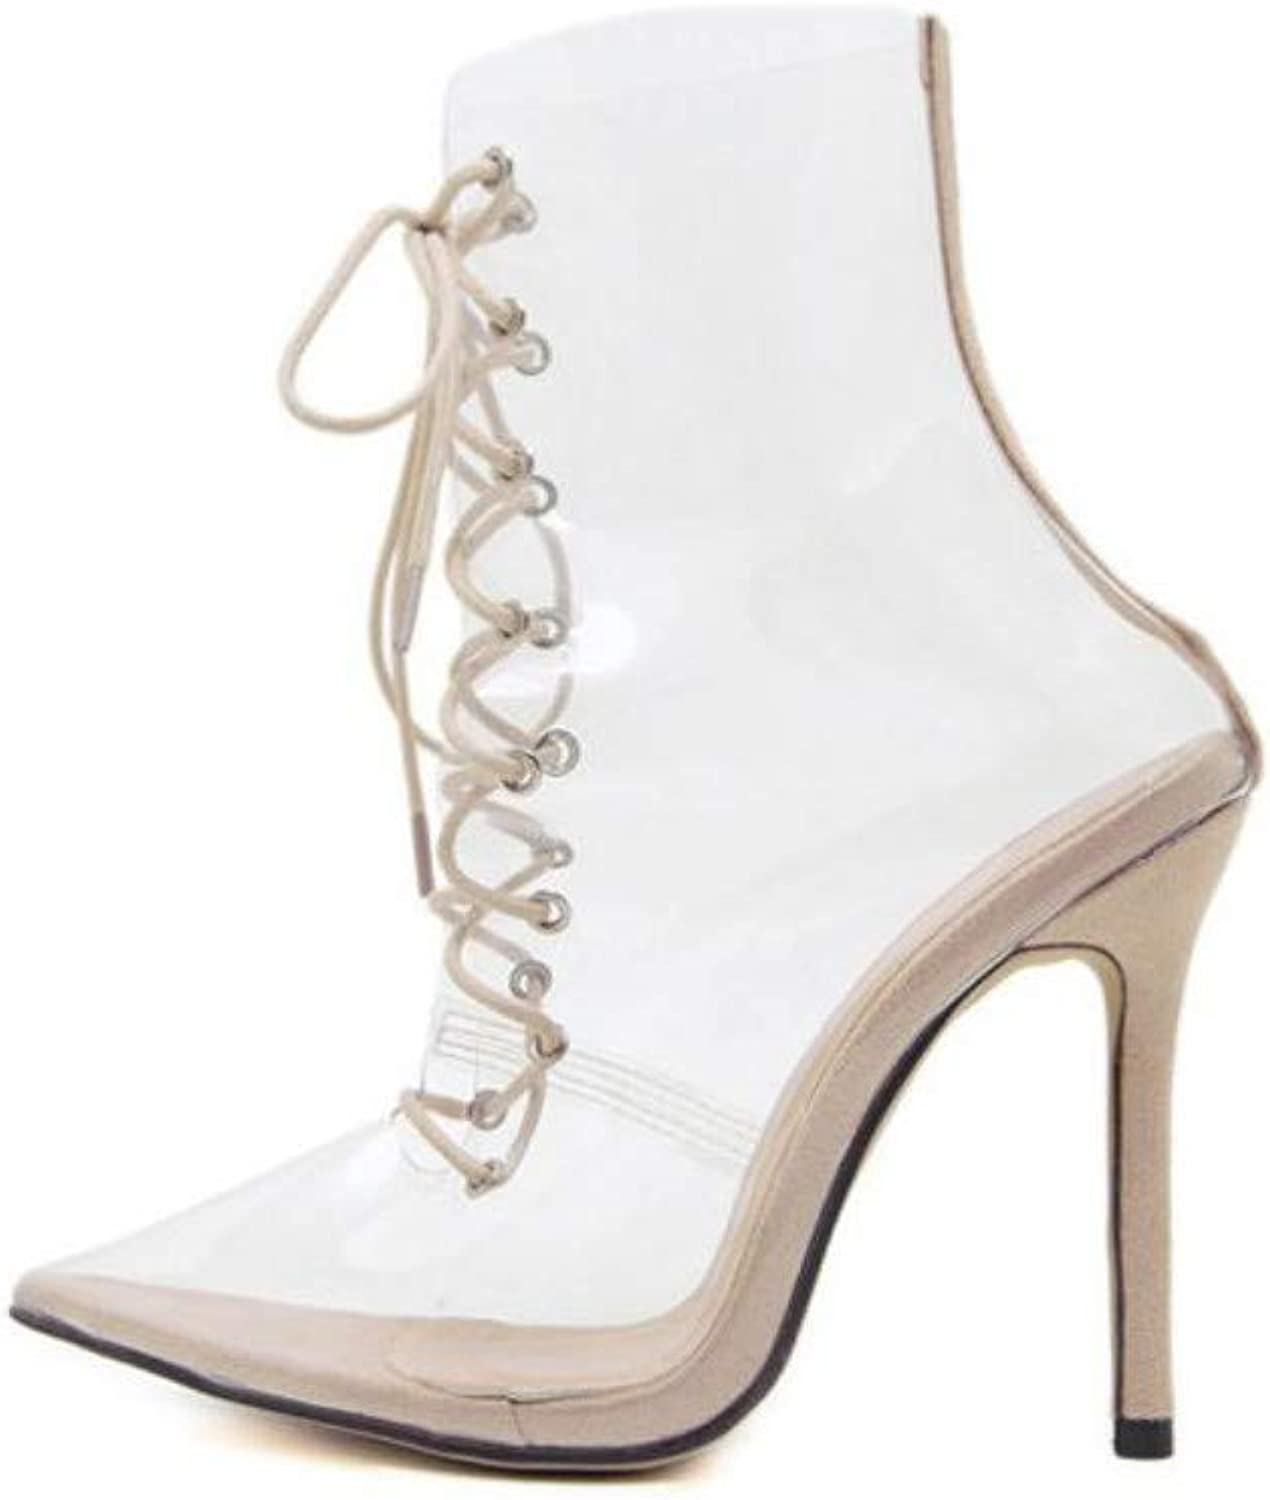 JQfashion Ladies'High Heels Transparent Sandals Sexy Pointed Sandals Tied with Thin Heels in Rome